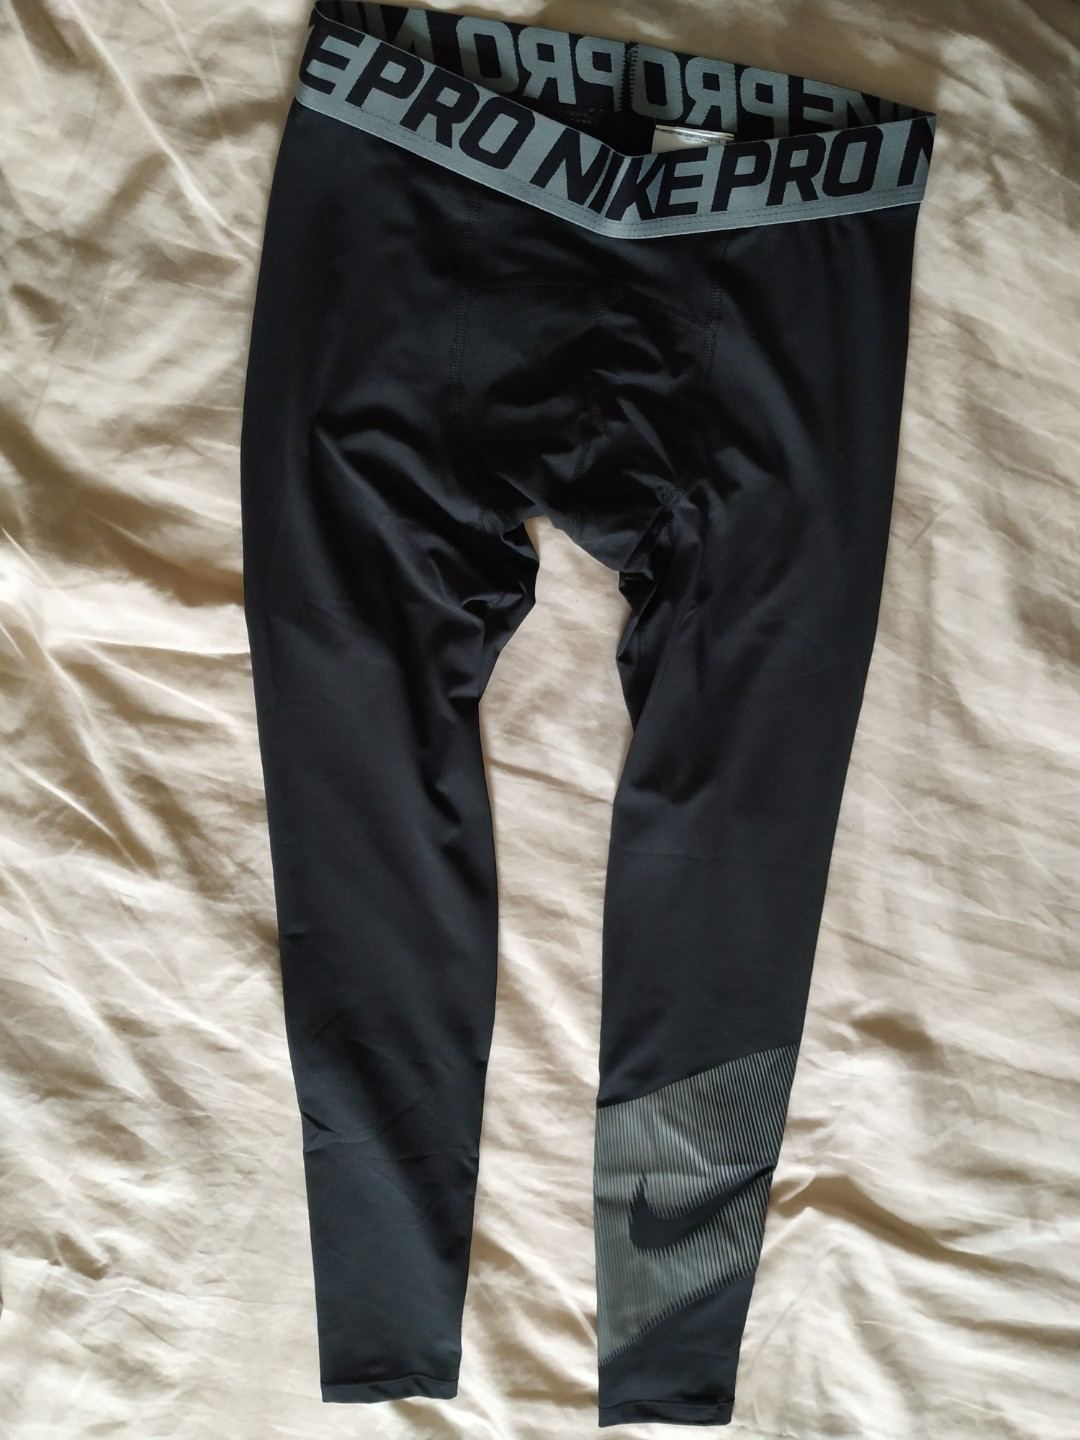 e58262c3c8413 Brand new nike pro training tights size small, Sports, Sports ...